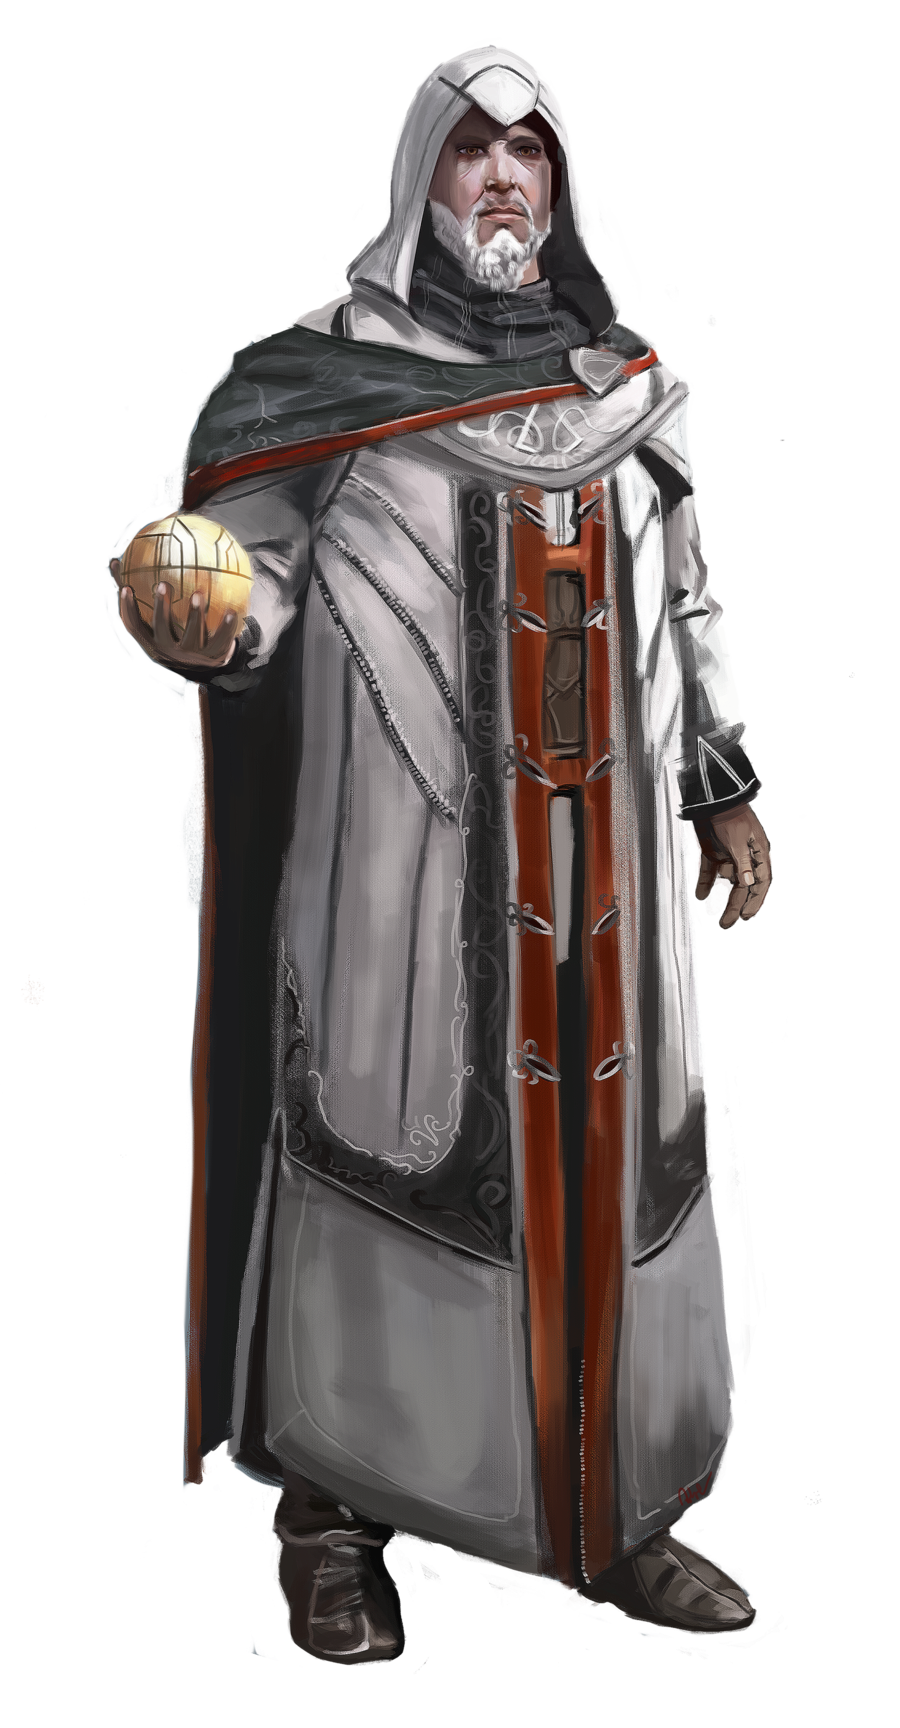 Old Altair by Namecchan   Personagens masculinos, Rpg, Super herói